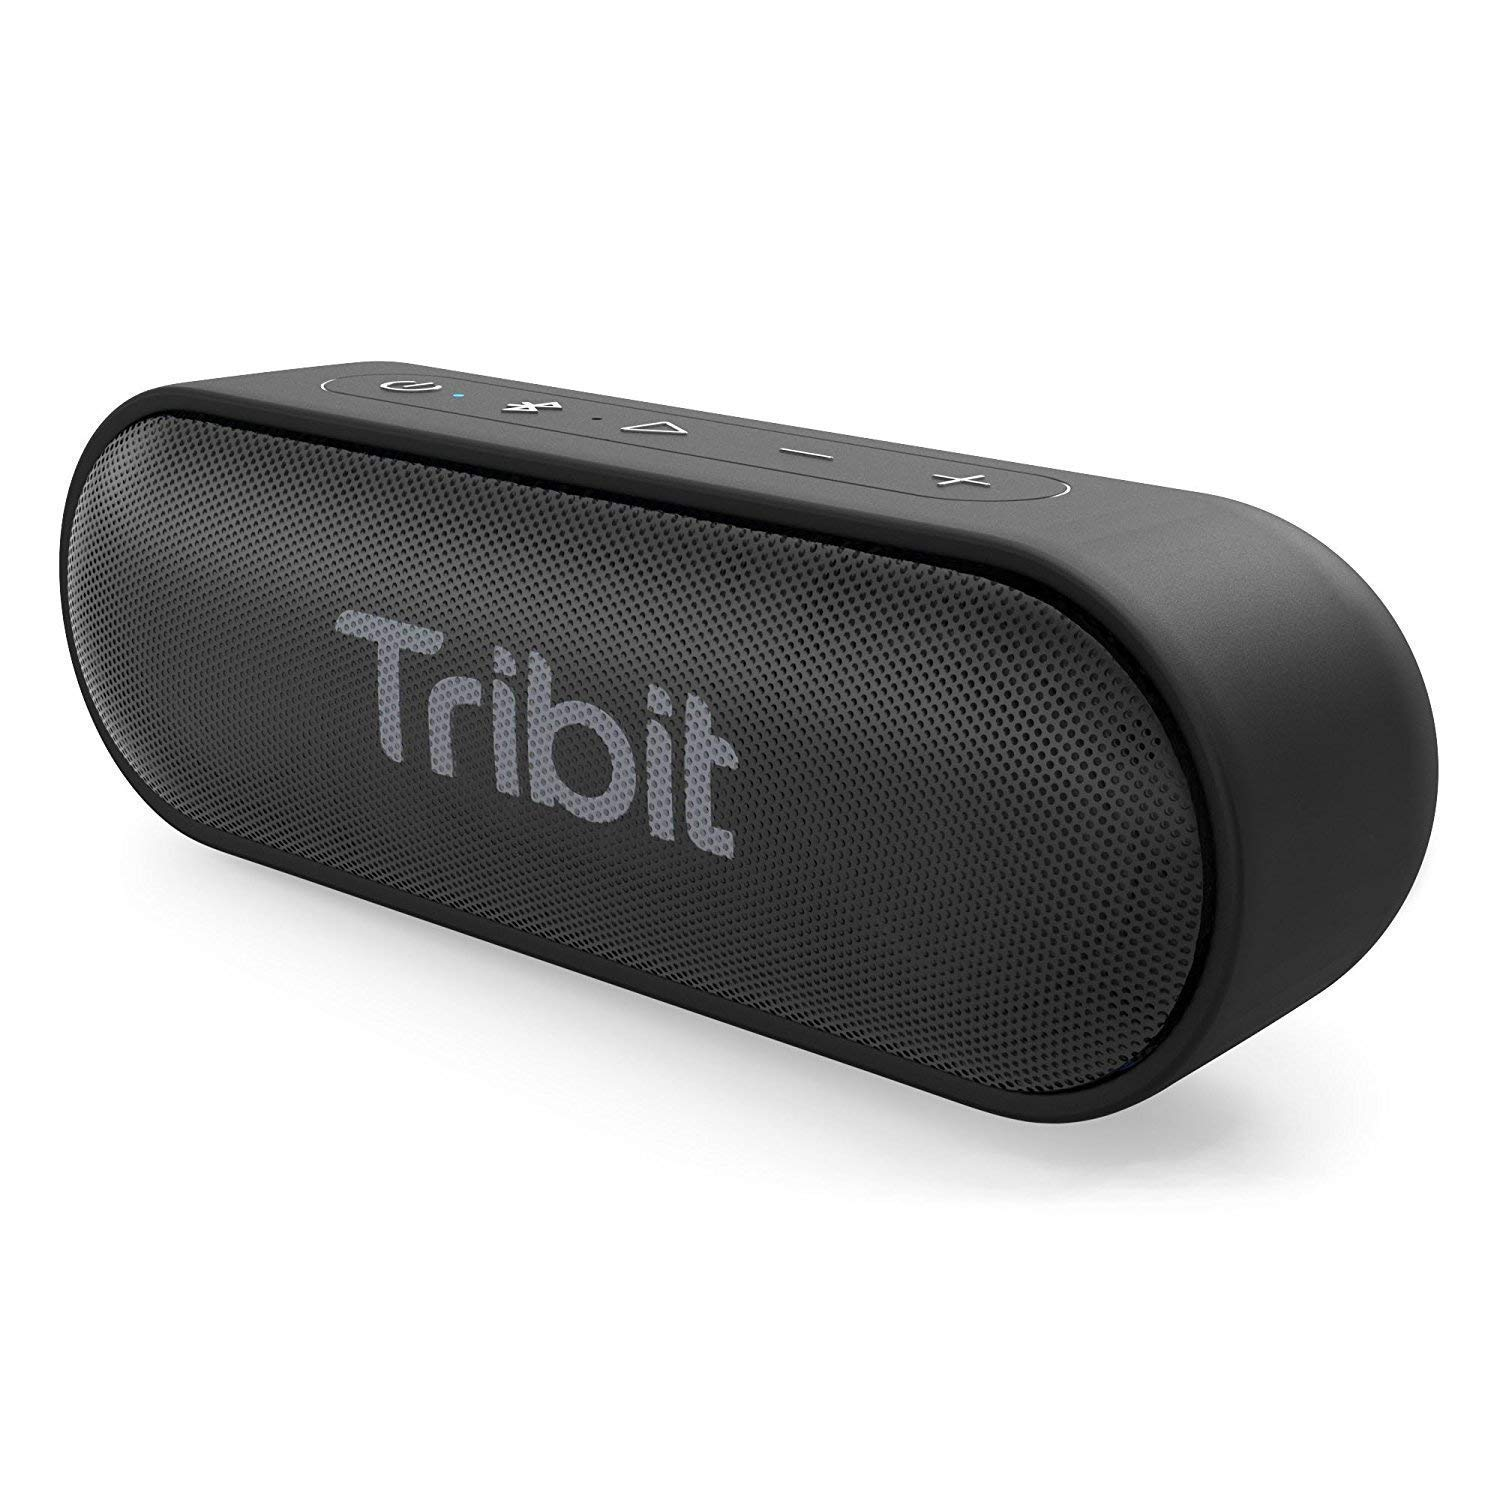 Tribit XSound Go Bluetooth Speakers - 12W Portable Speaker Loud Stereo Sound, Rich Bass, IPX7 Waterproof, 24 Hour Playtime, 66 ft Bluetooth Range & Built-in Mic Outdoor Party Wireless Speaker by Tribit